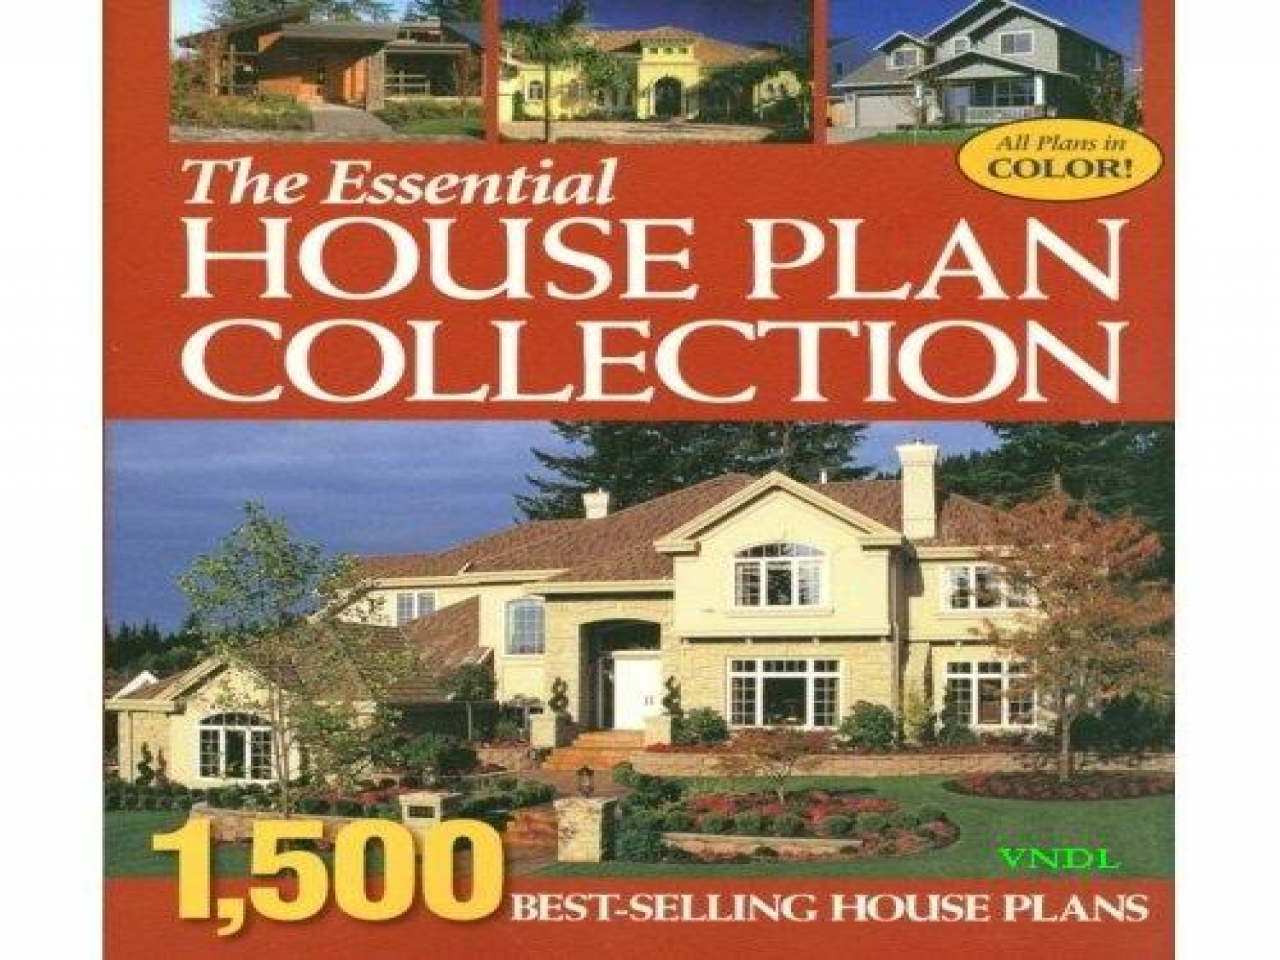 Architectural designs house plans asp house plans free for Best selling house plans 2016